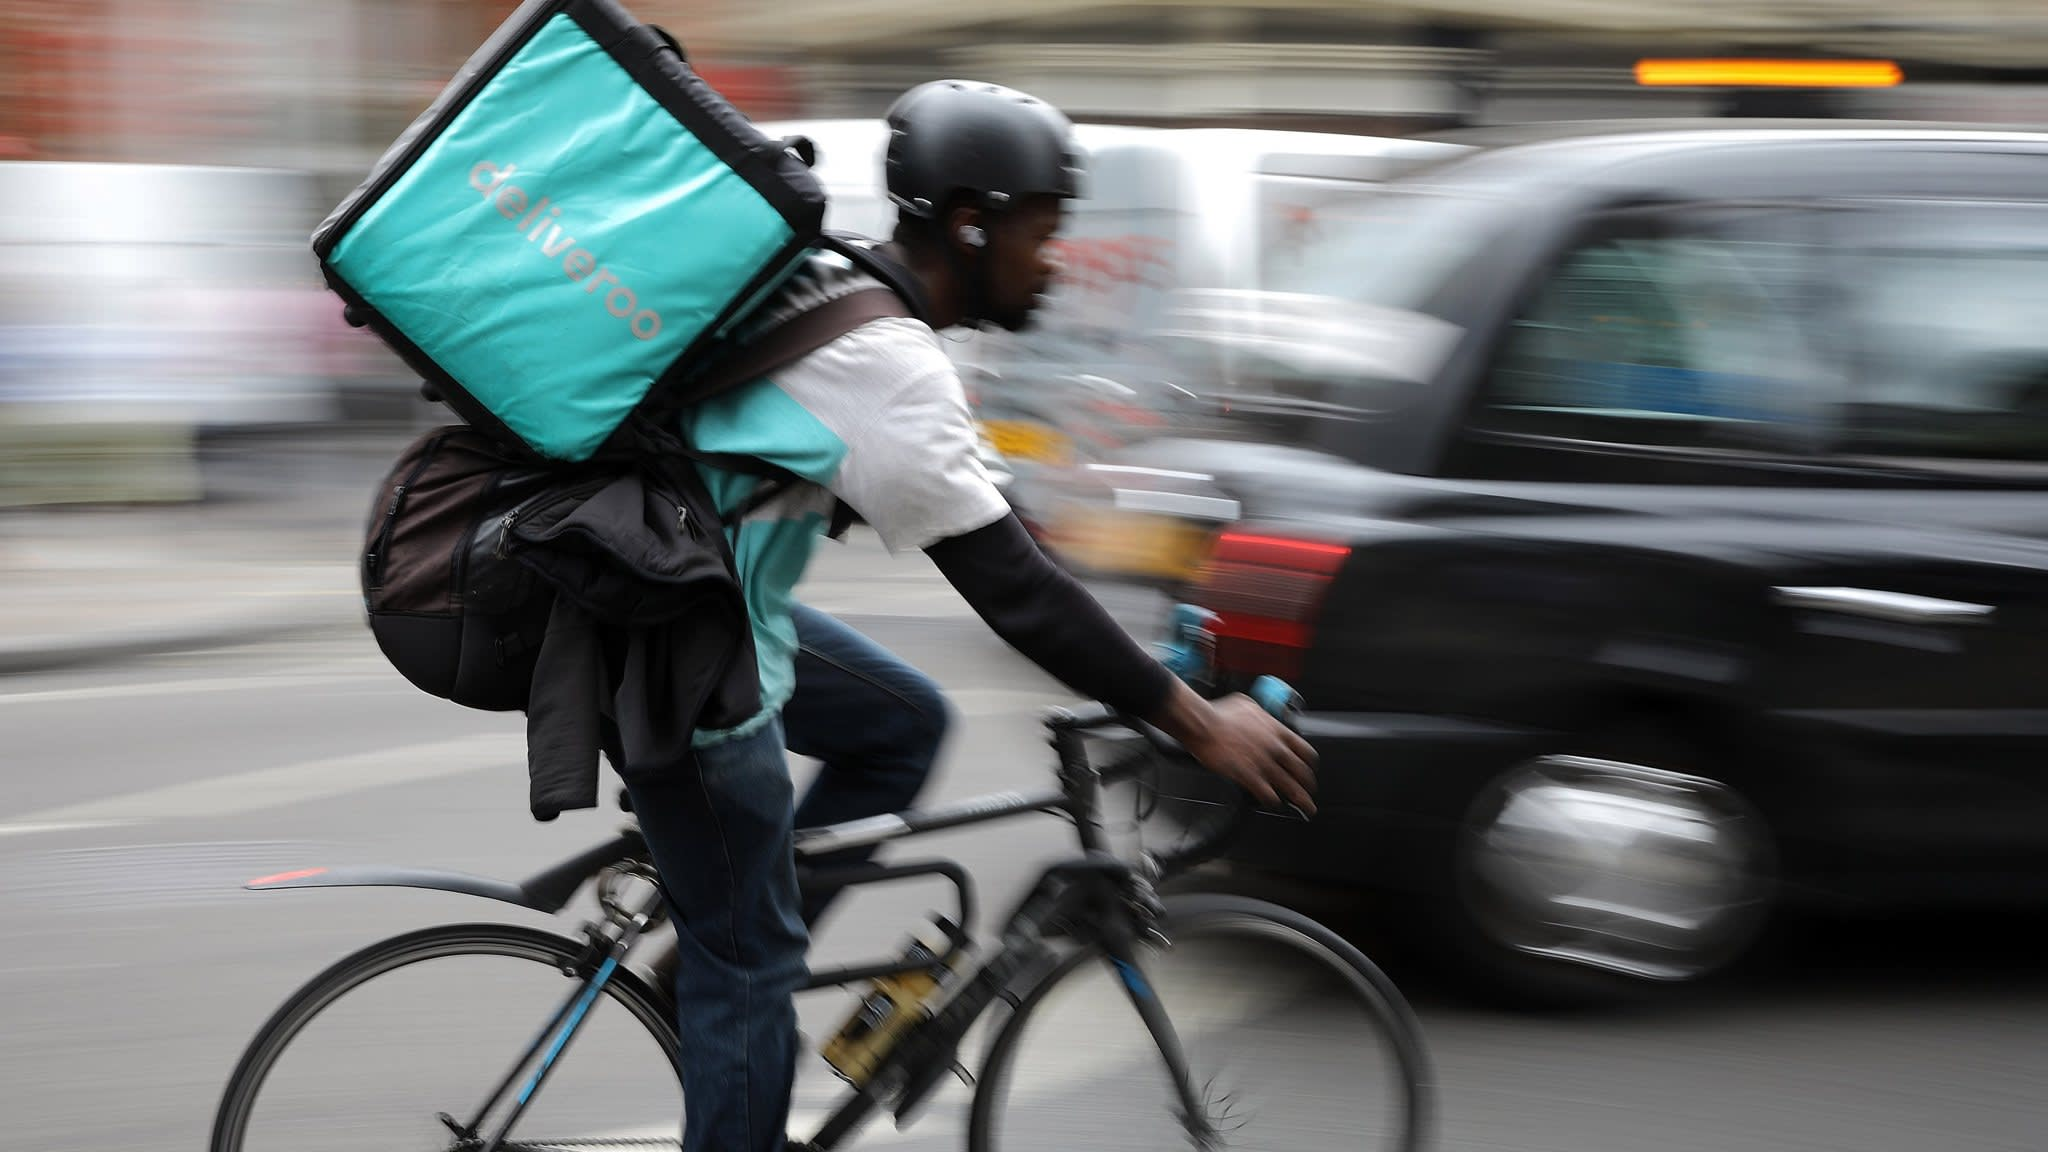 Uber in early talks to acquire food delivery rival Deliveroo